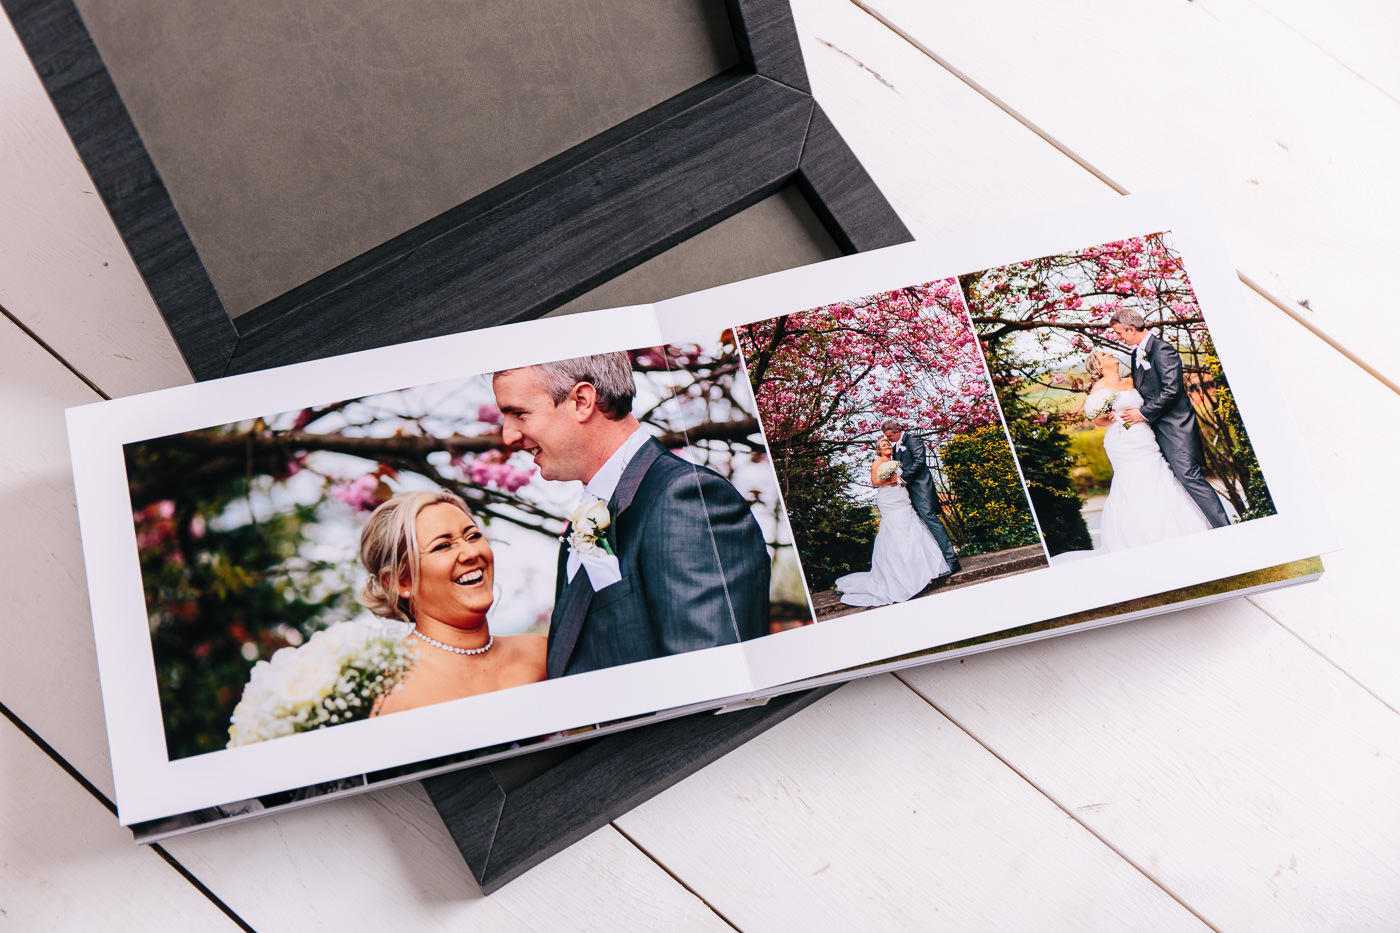 open layflat wedding album pages